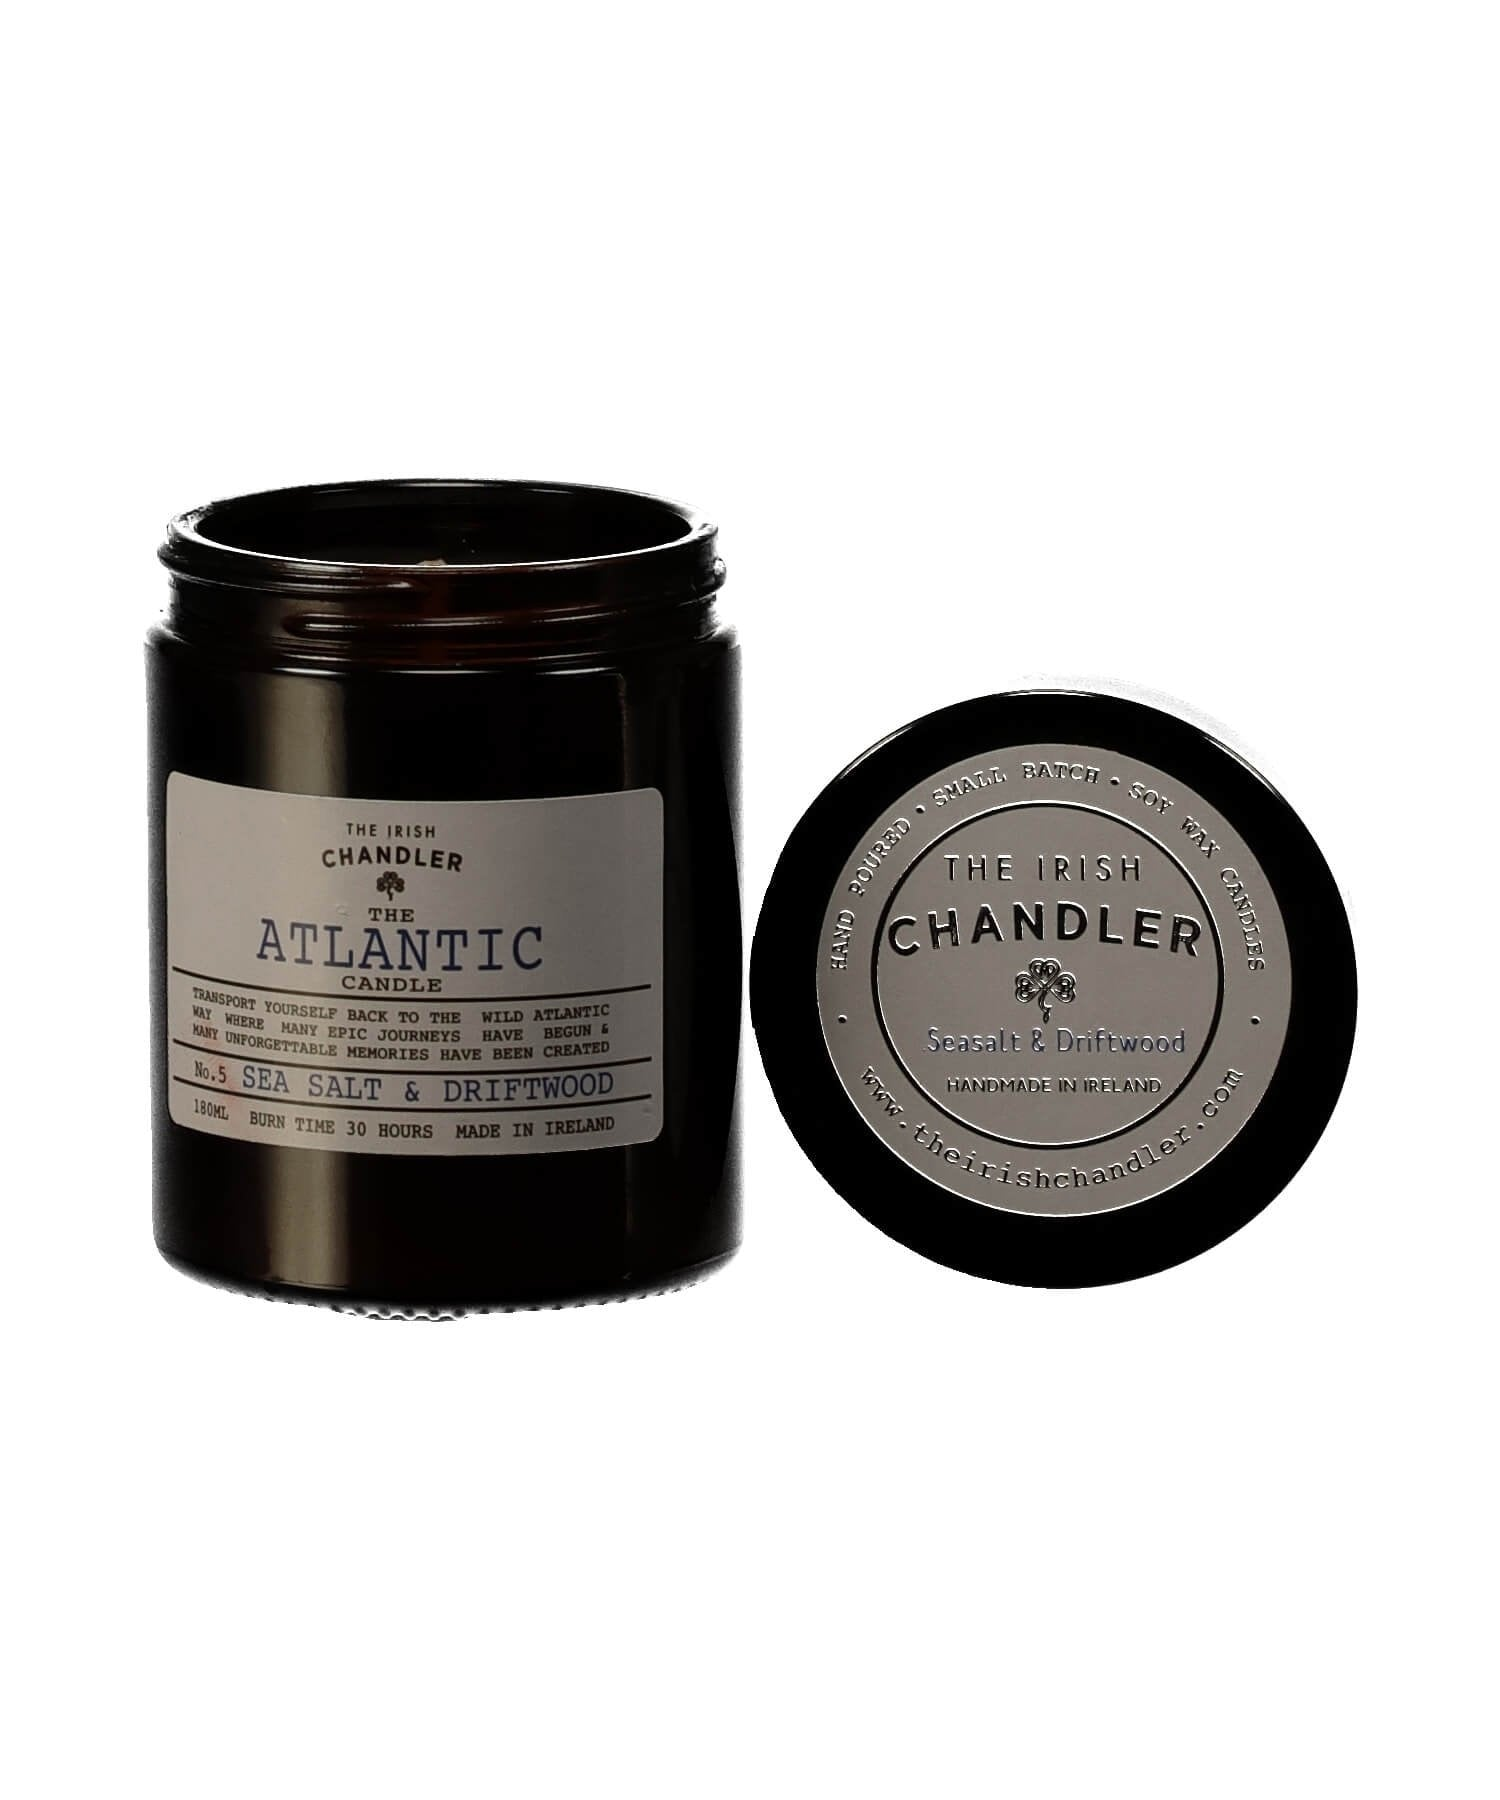 Amber Glass Candle - Atlantic - [The Irish Chandler] - Home Fragrance - Irish Gifts